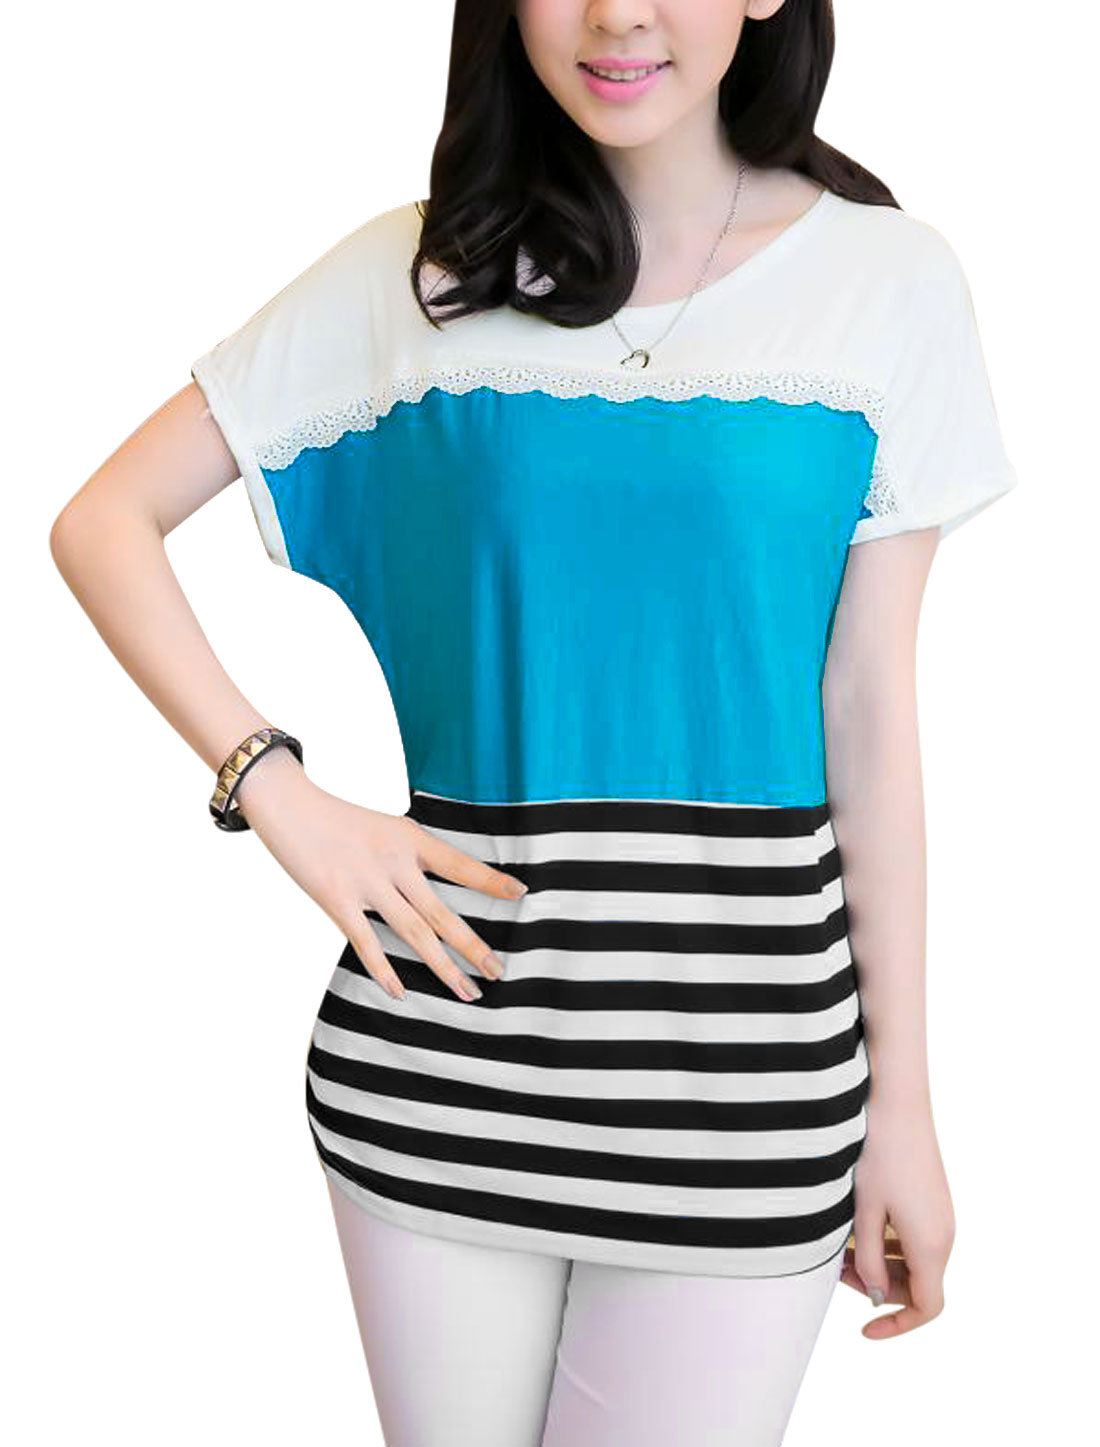 Lady's Stripes Print Contrast Color Gathered Detail Tee Shirt Blue XS